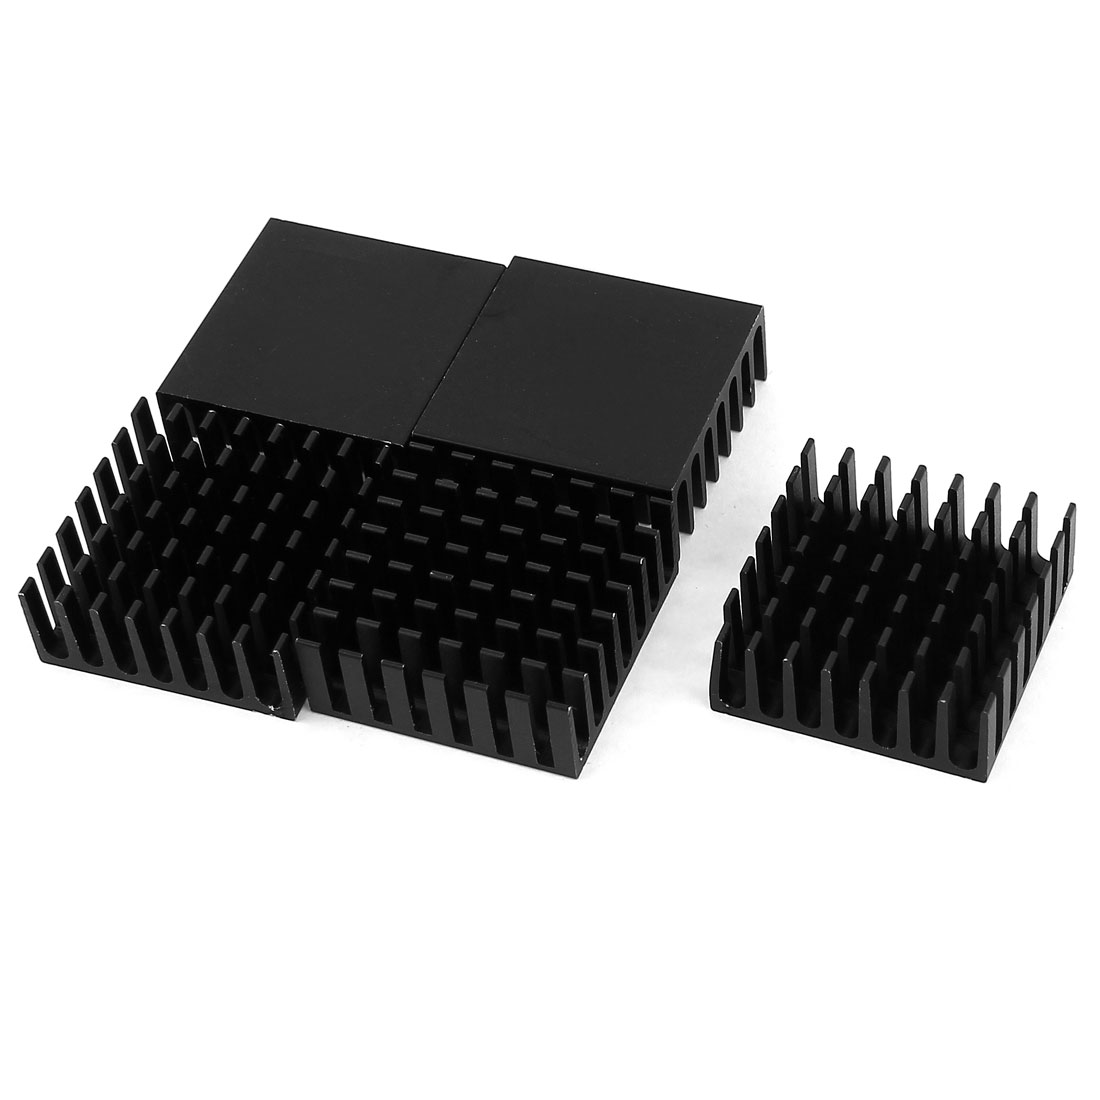 5 Pcs Black Aluminum Cooler Radiator Heat Sink Heatsink 28mm x 28mm x11mm